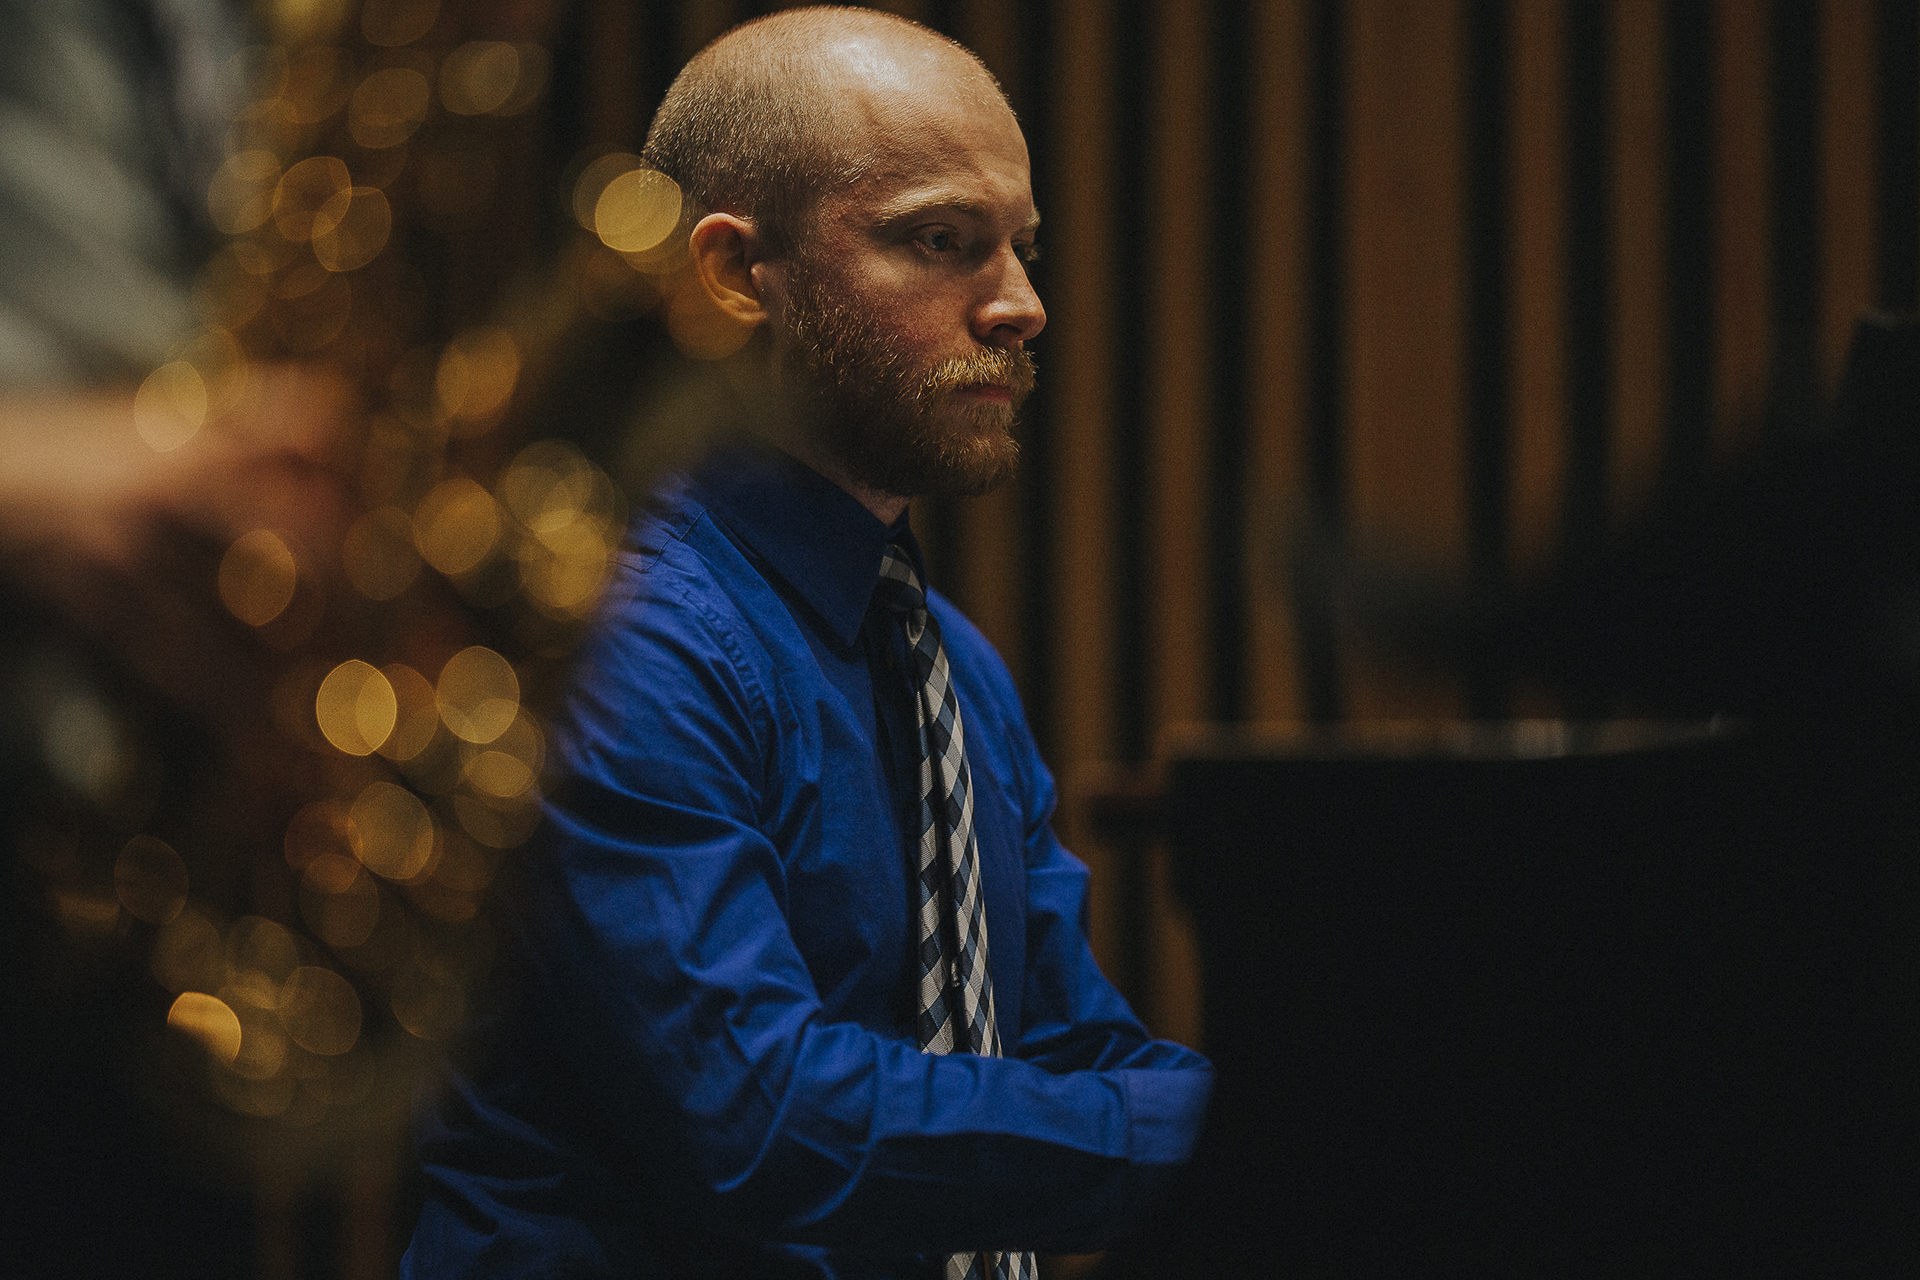 Casey Rafn - Located in the Twin Cities area, Casey Rafn currently holds positions at the Lundstrum Center for Performing Arts, Saint Paul Conservatory for Performing Artists, and is the pianist for the Bloomington Chorale. An award winning performer and active freelancer, his upcoming season includes performances in Switzerland, Uruguay, and Shell Lake, WI. Originally from Two Harbors, MN, he received his bachelor's and master's degrees in piano performance from The University of Iowa studying under Dr. Ksenia Nosikova.